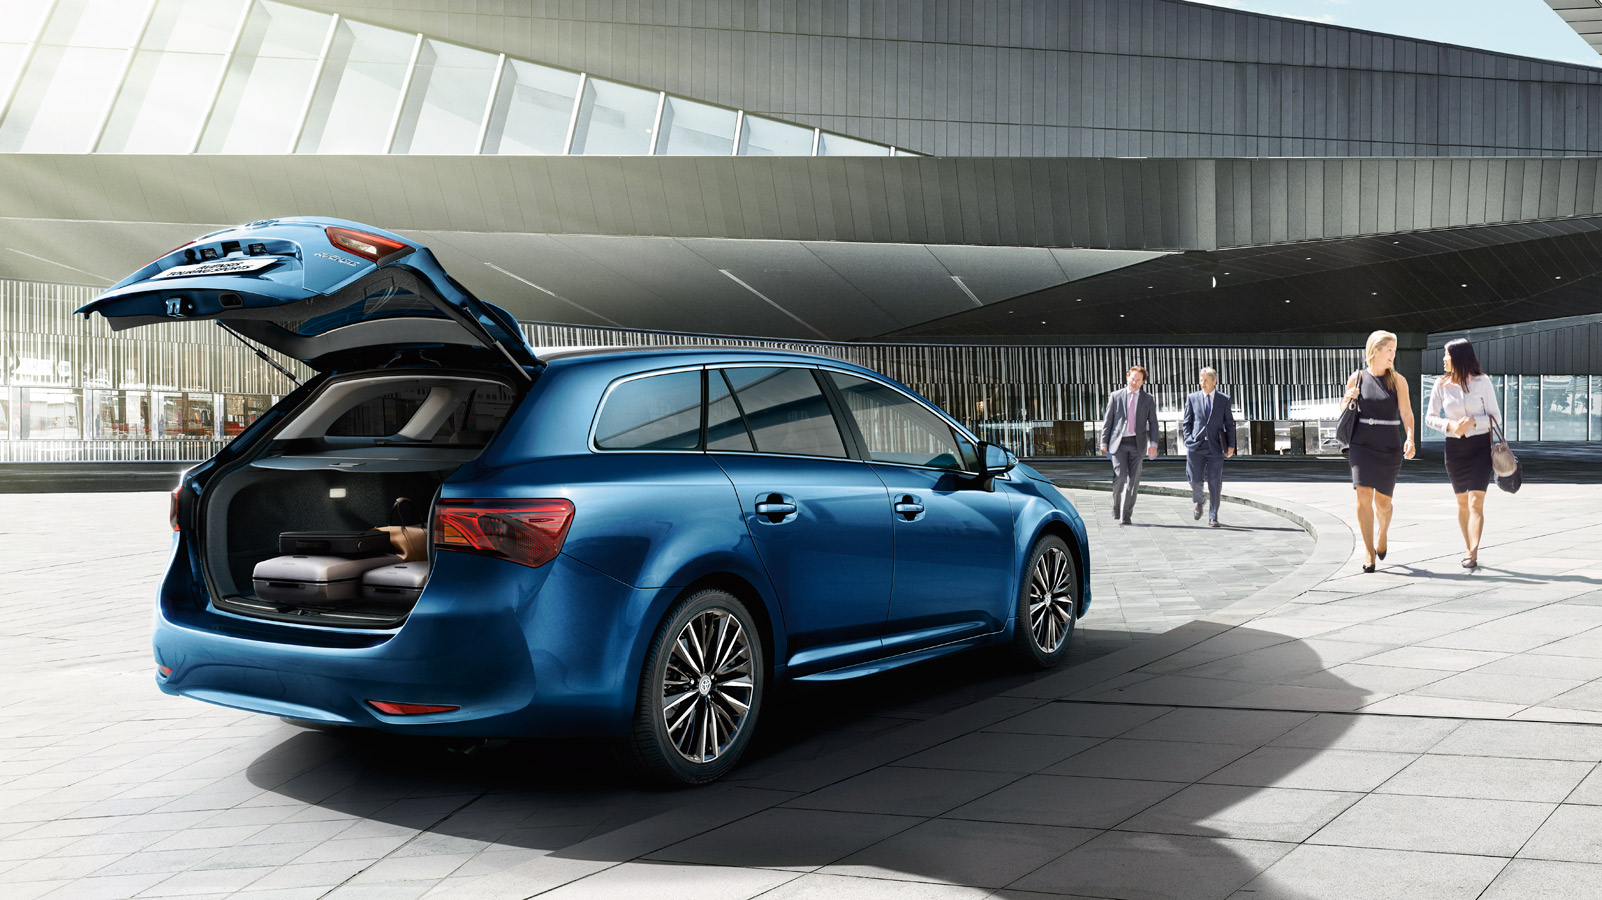 Toyota Avensis exterior, Blue, back side view, open boot with suitcases, daytime shot, women & men walking past